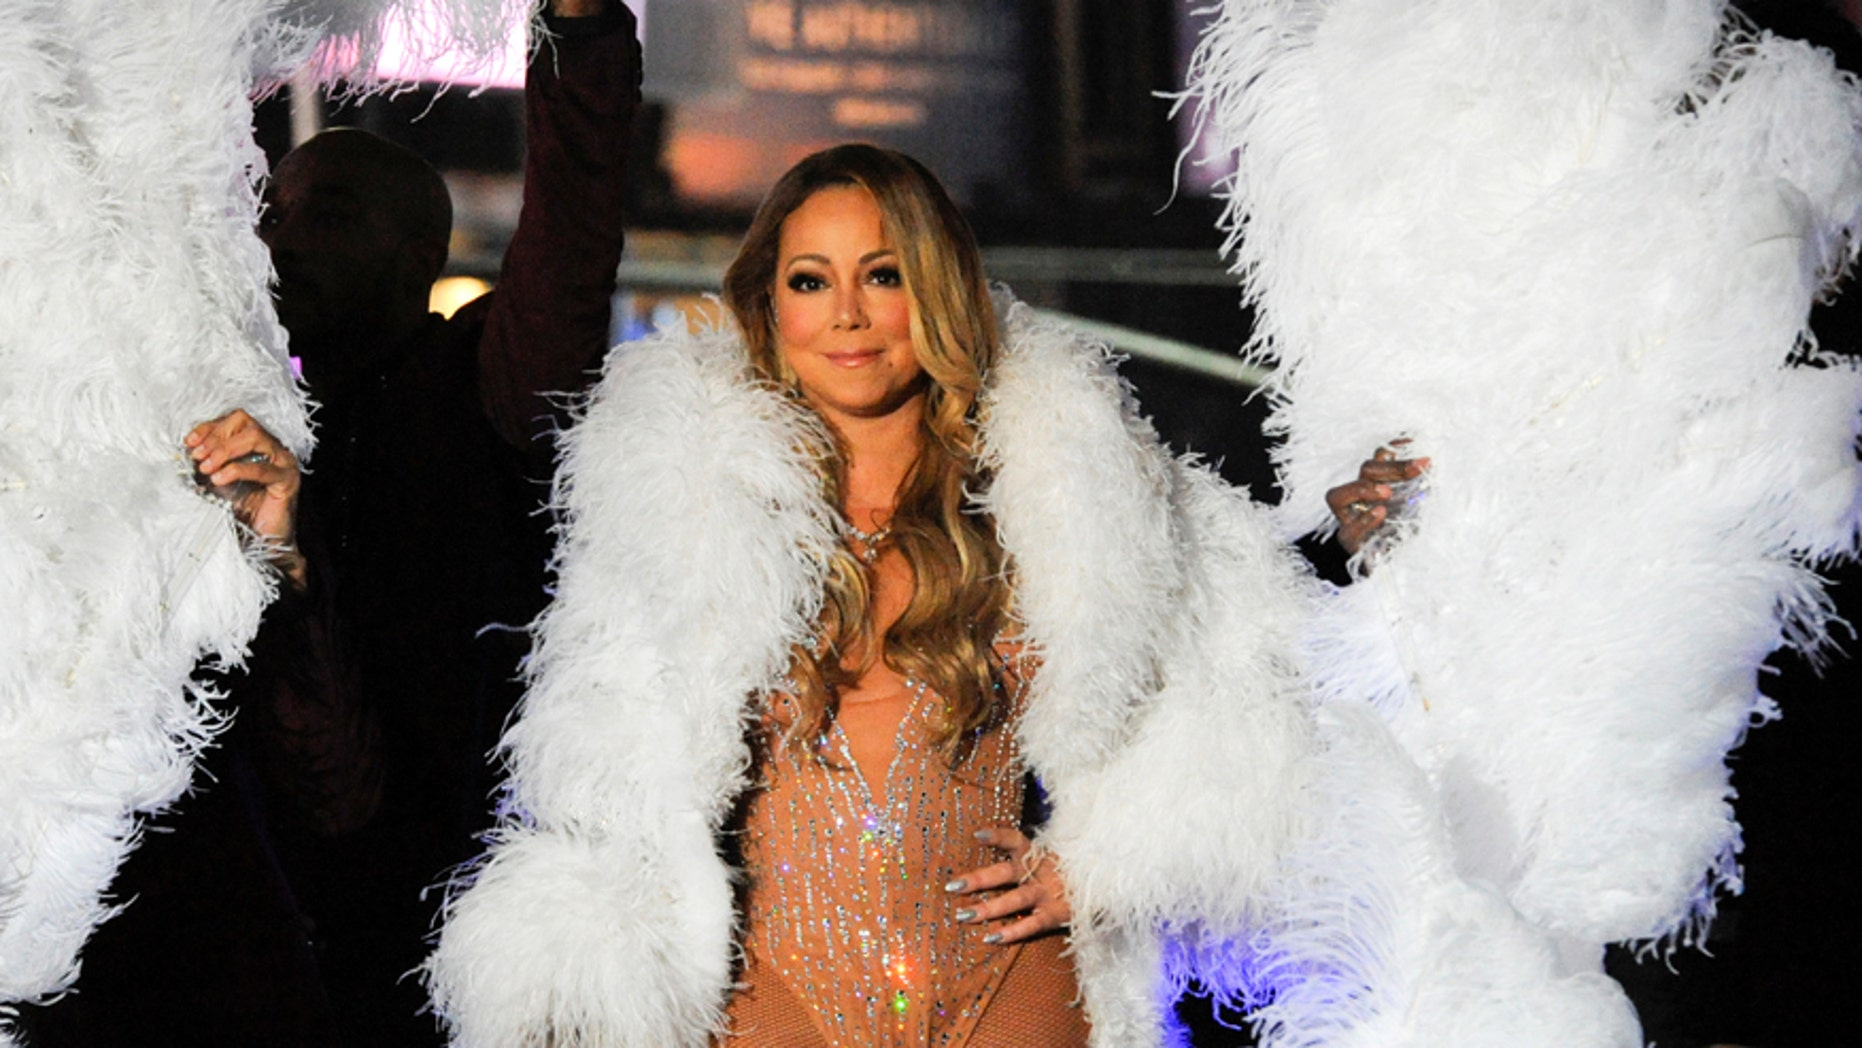 """Carey was slammed for her less than wonderful performance on """"Dick Clark's Rockin' New Year's Eve."""" The singer stopped singing in the middle of her performance, began pacing the stage and told the audience to finish the lyrics for her. Carey blamed herdisastrous show on technical difficulties and said it was Dick Clark Productions fault for not addressing the tech issues before the performance, including a malfunctioning earpiece. The production company denied Carey's claims."""